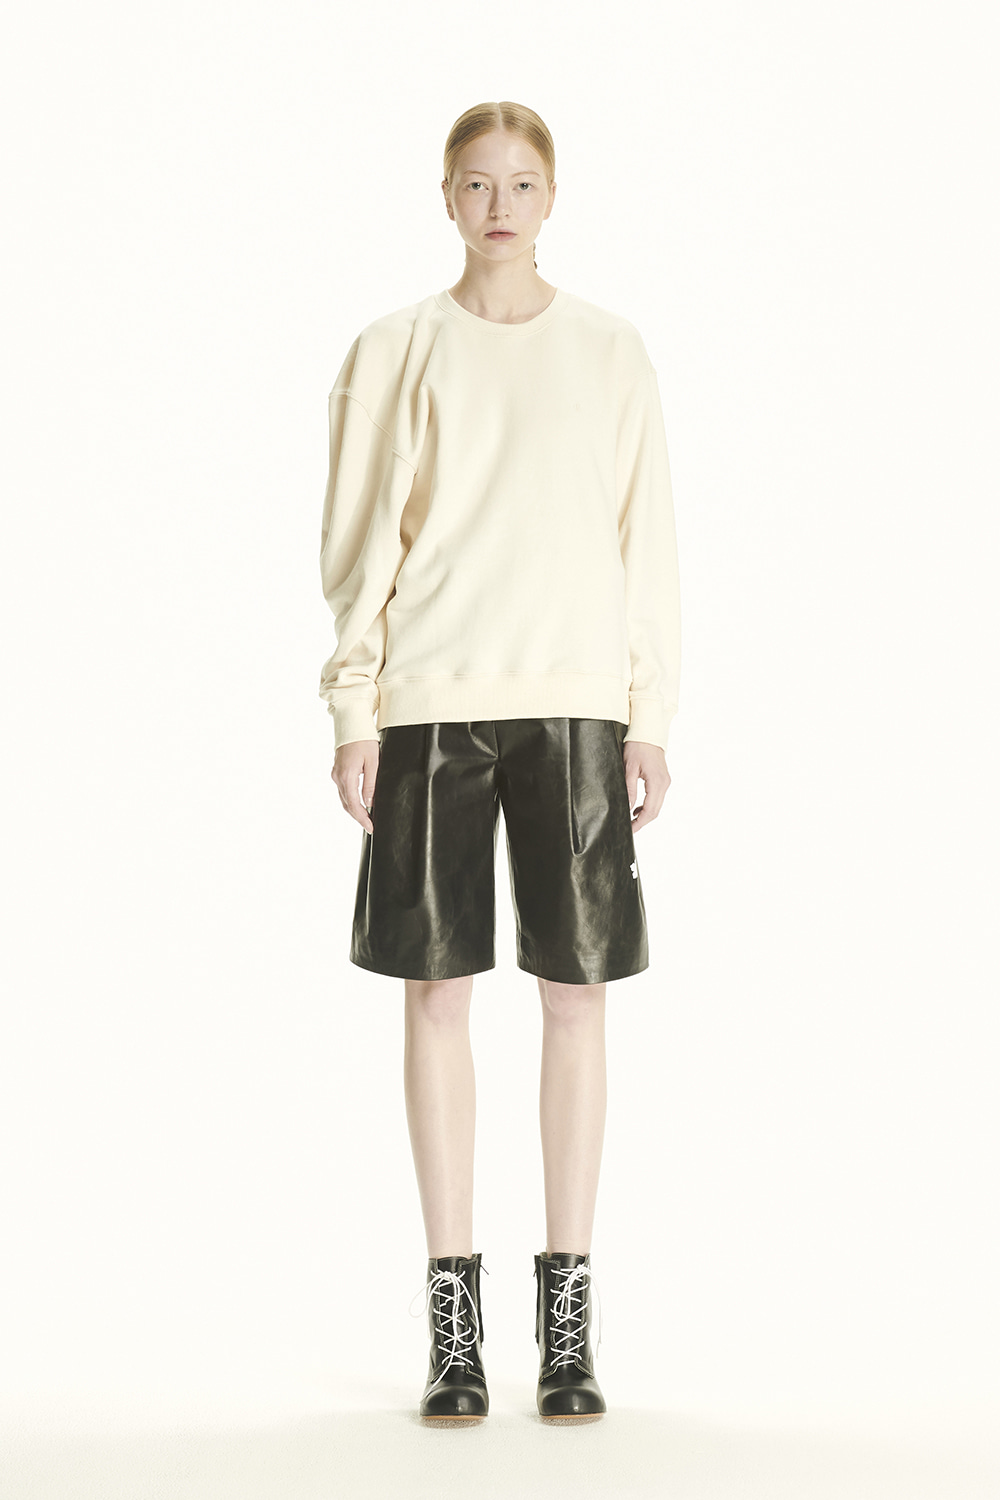 PS21 UNBALANCED SHOULDER IVORY SWEATSHIRT